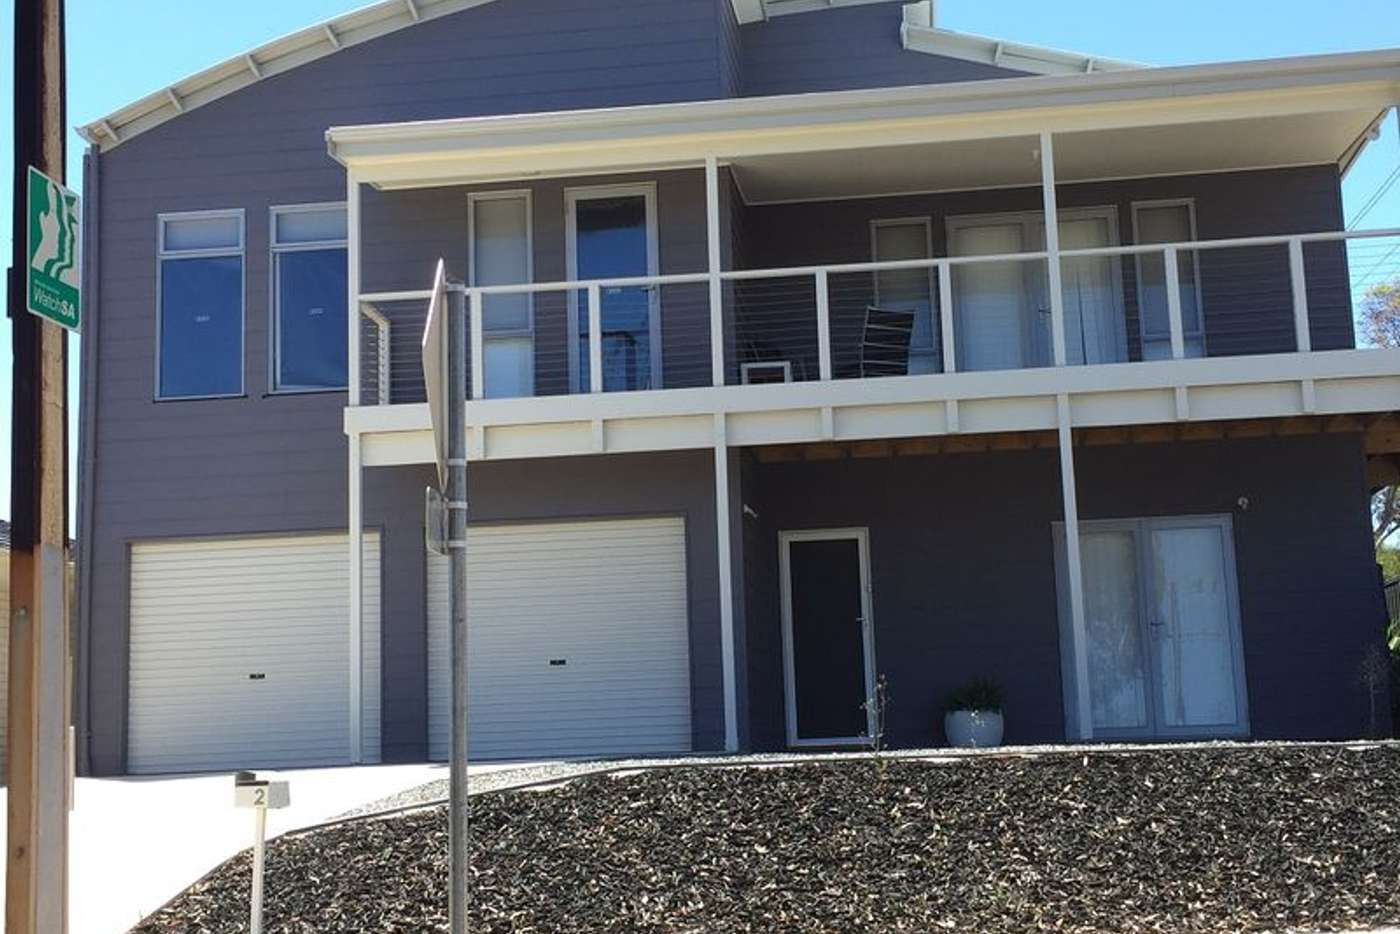 Main view of Homely house listing, 2 Holly Street, Christies Beach SA 5165